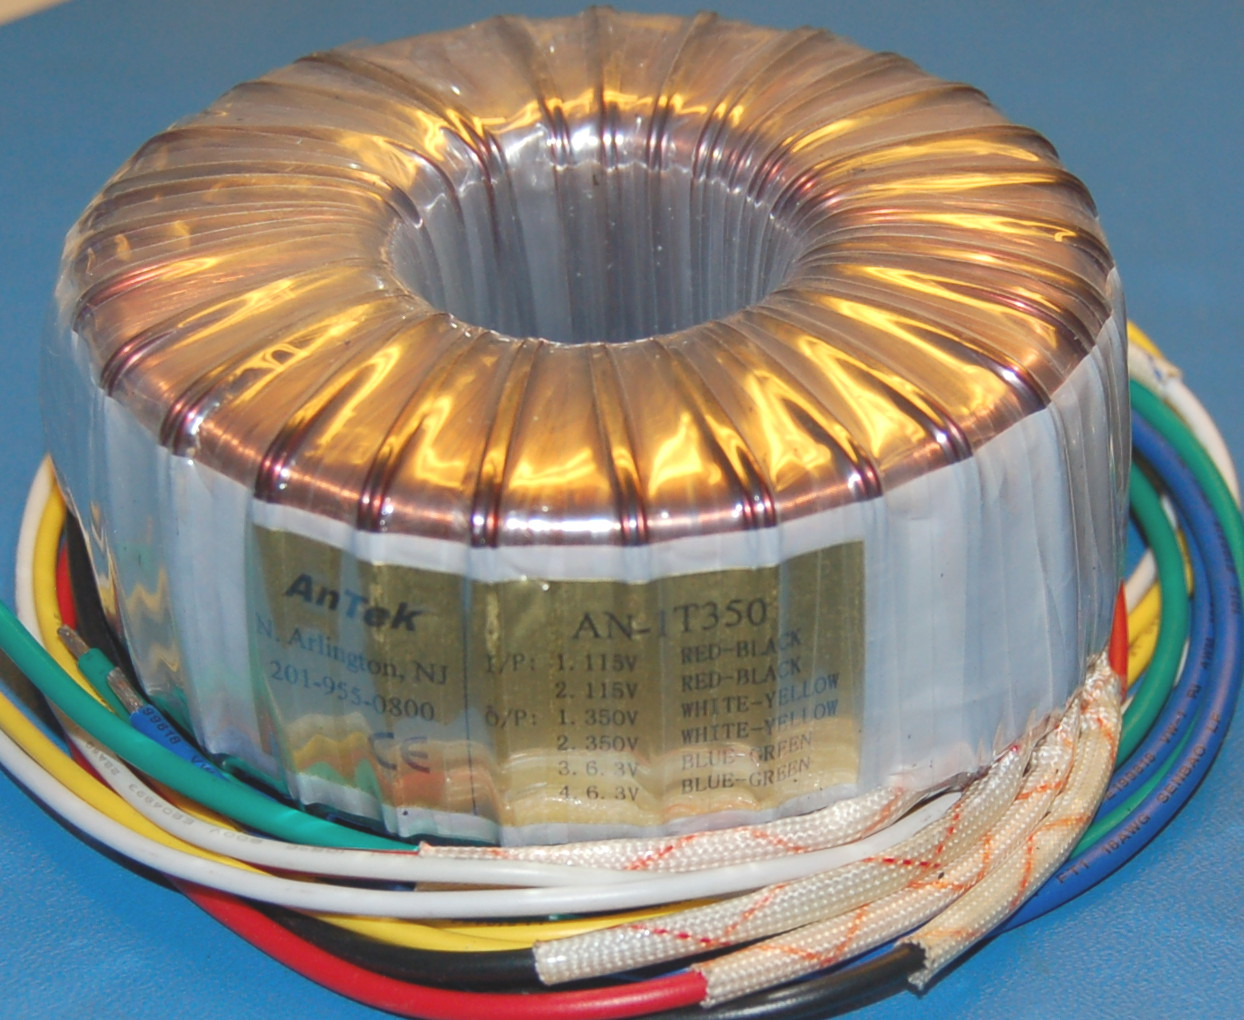 Toroidal Tube Amp Power Transformer, 115V/230V to Dual 350V and 6.3V (100 VA)